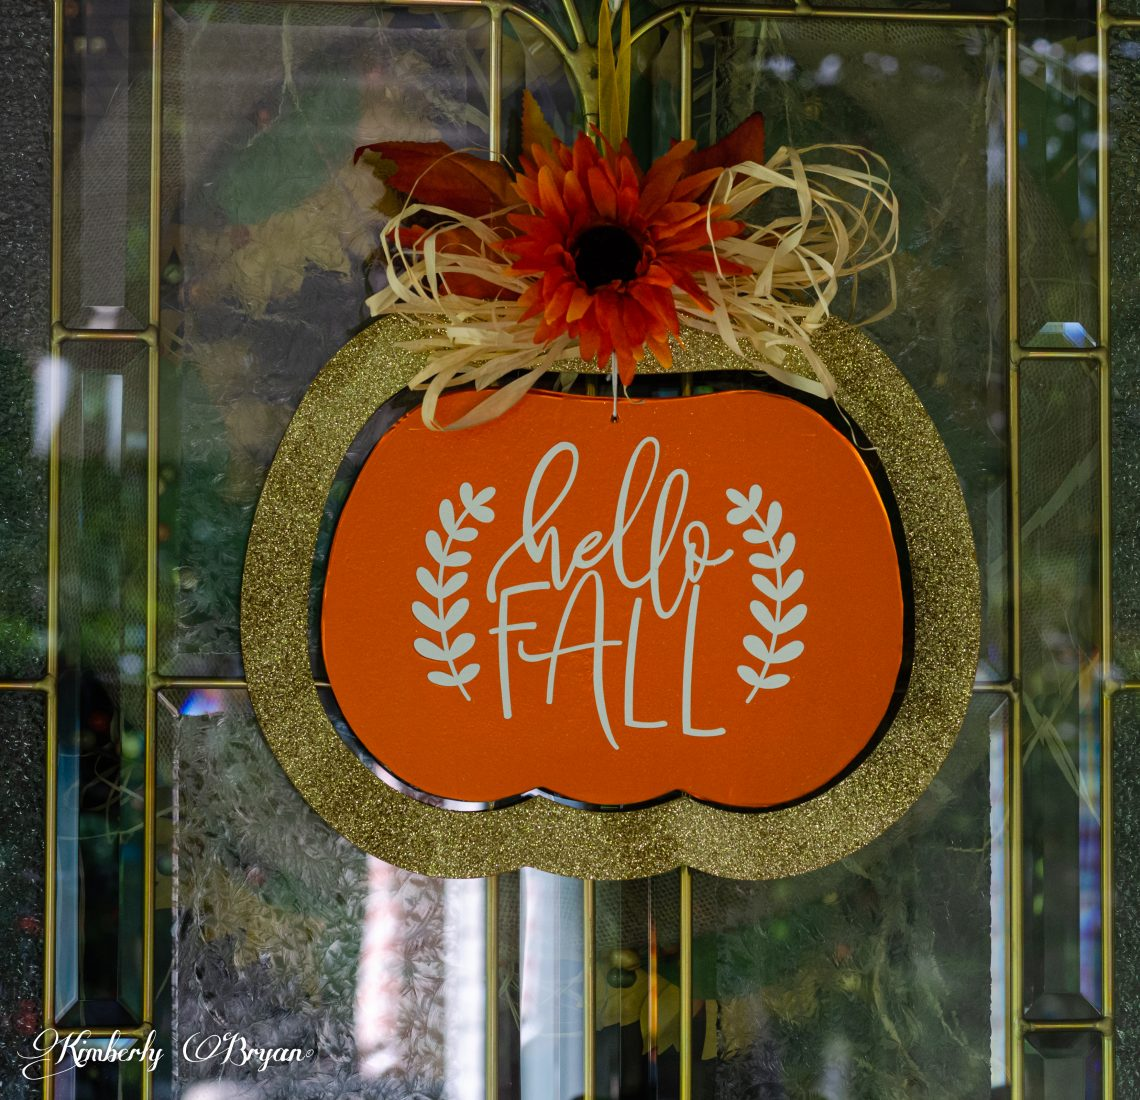 You are looking at the completed Hello Fall makeover sign. From the Easy DIY Fall Hanger: From The Dollar Tree post. It's shaped in a pumpkin with a glitter gold frame. I added natural raffia, fall leaves and an orange sunflower at the top.